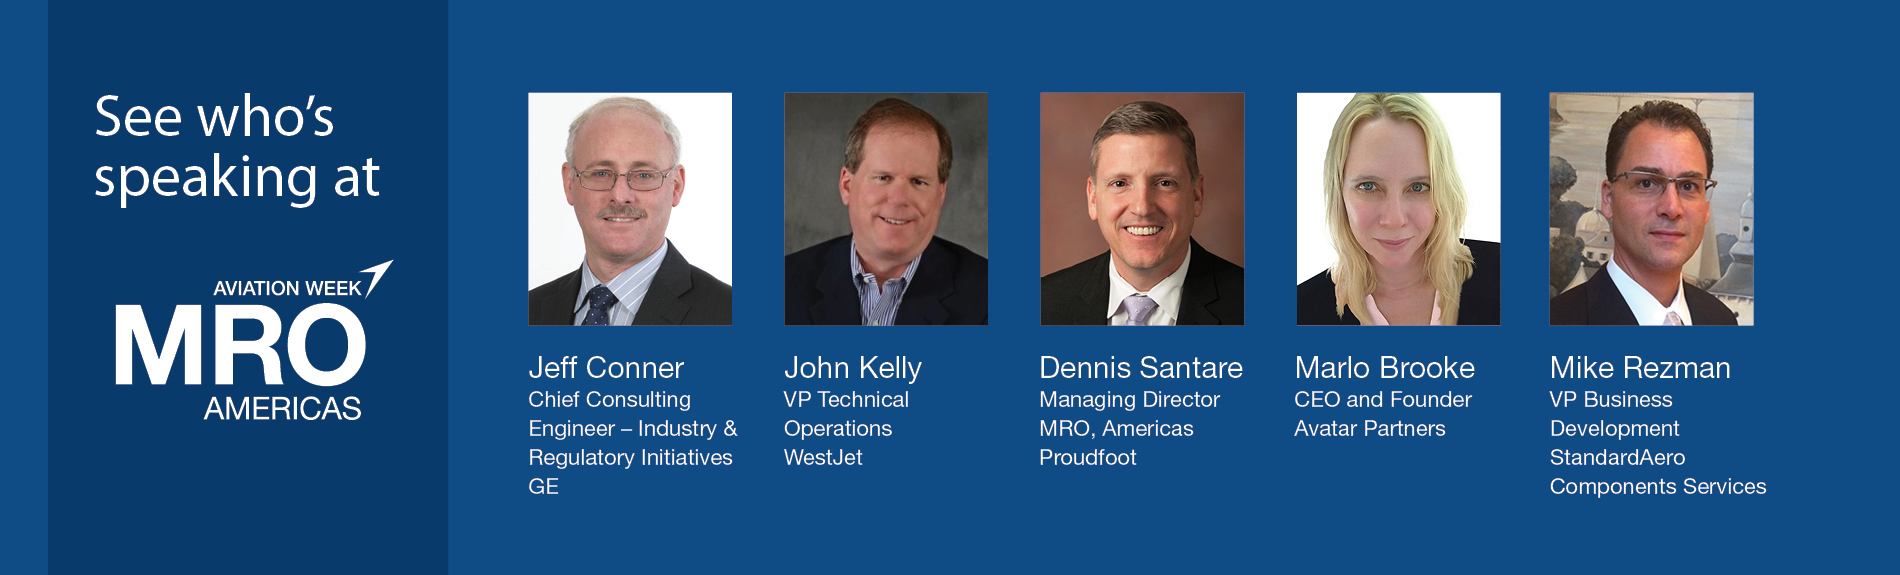 See who's speaking at MRO Americas